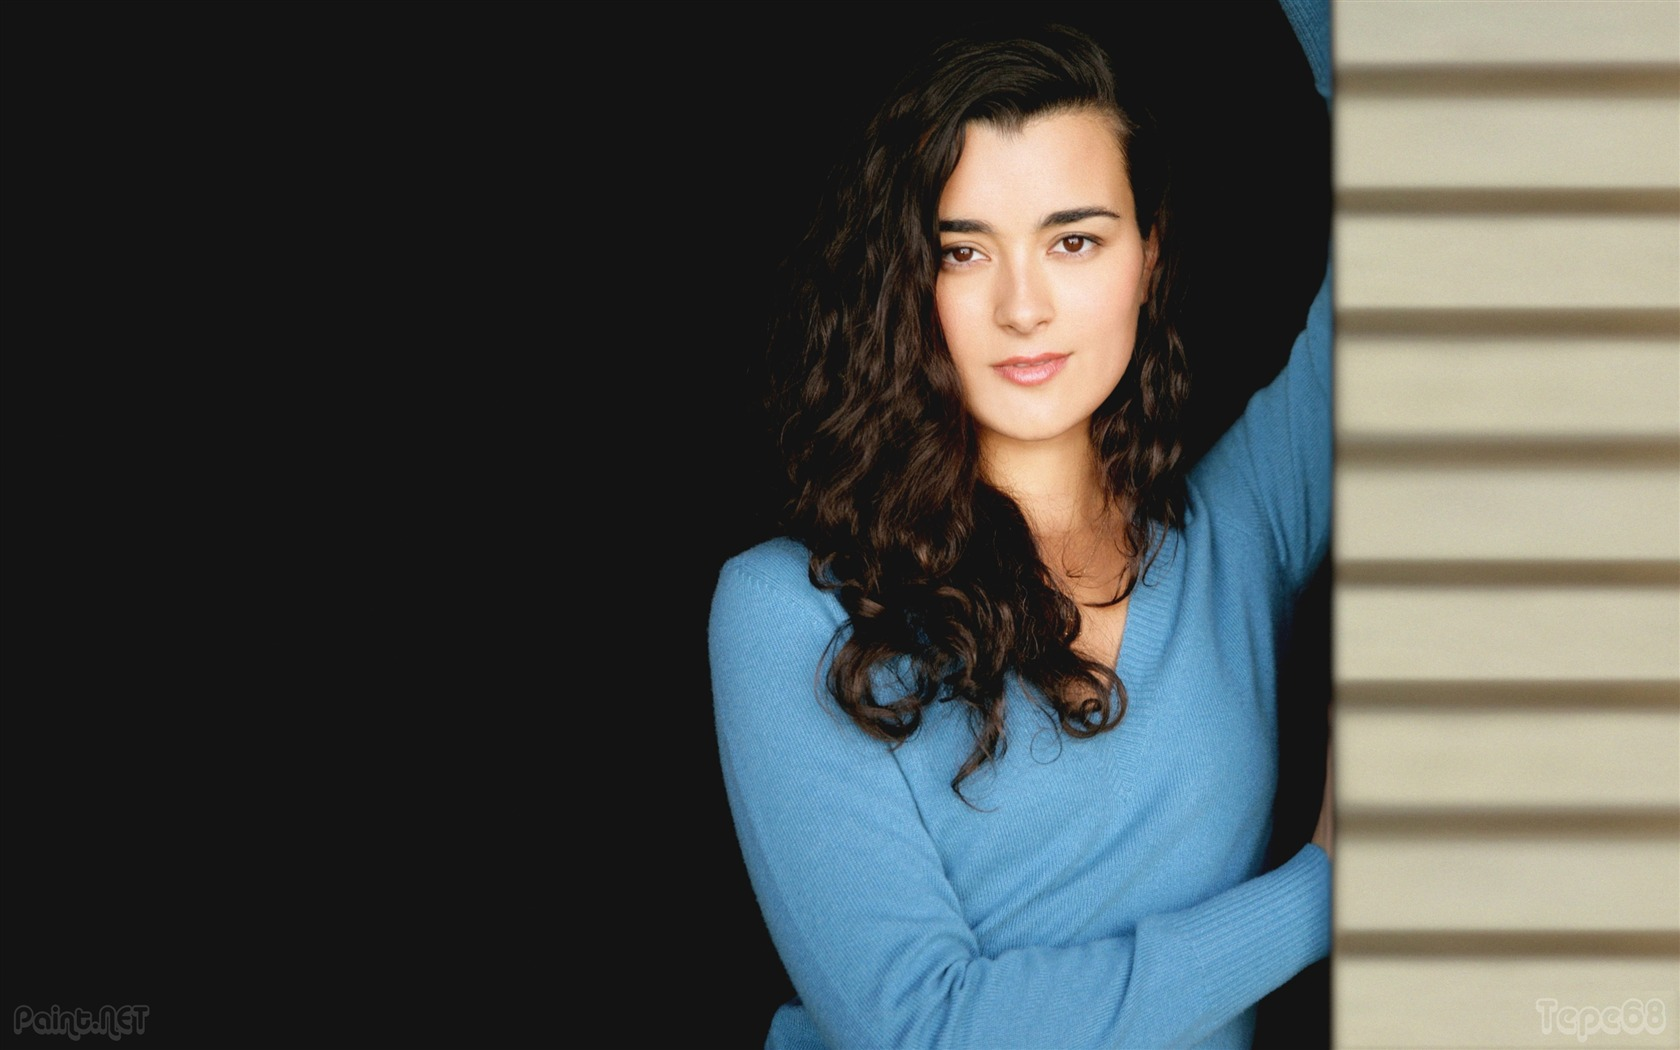 Cote de Pablo #014 - 1680x1050 Wallpapers Pictures Photos Images